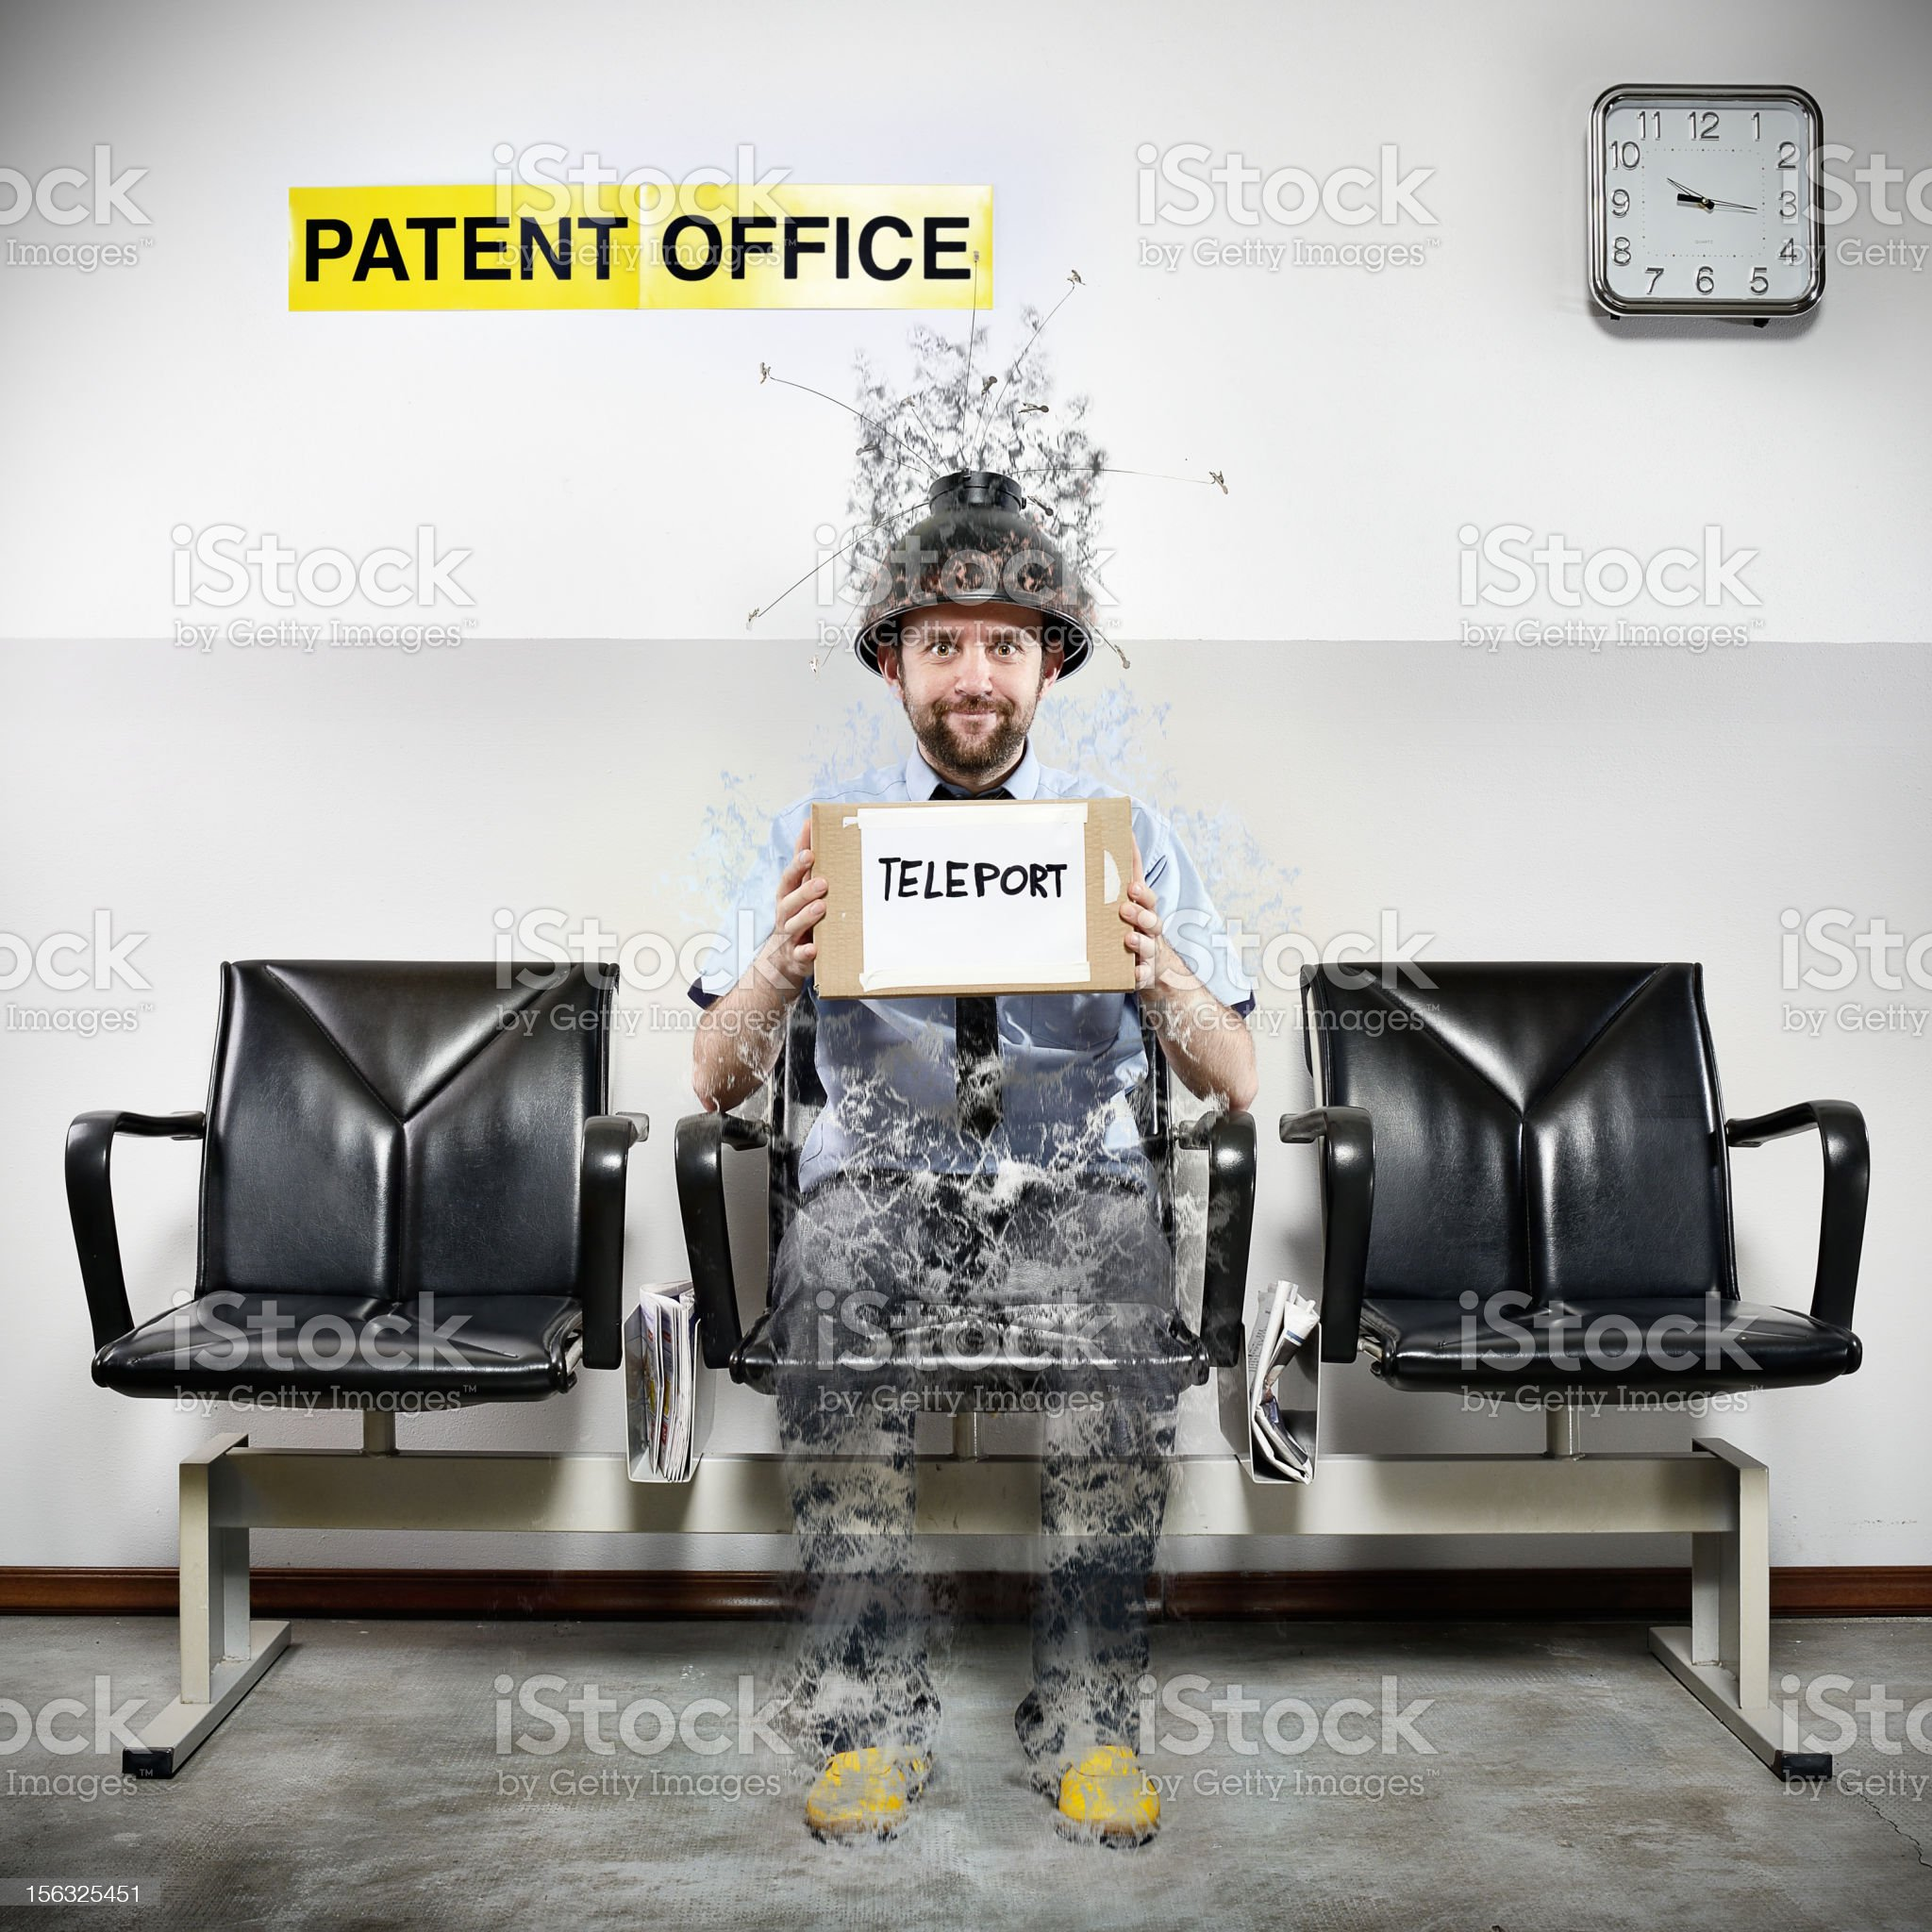 Patent Office Series: Teleport royalty-free stock photo